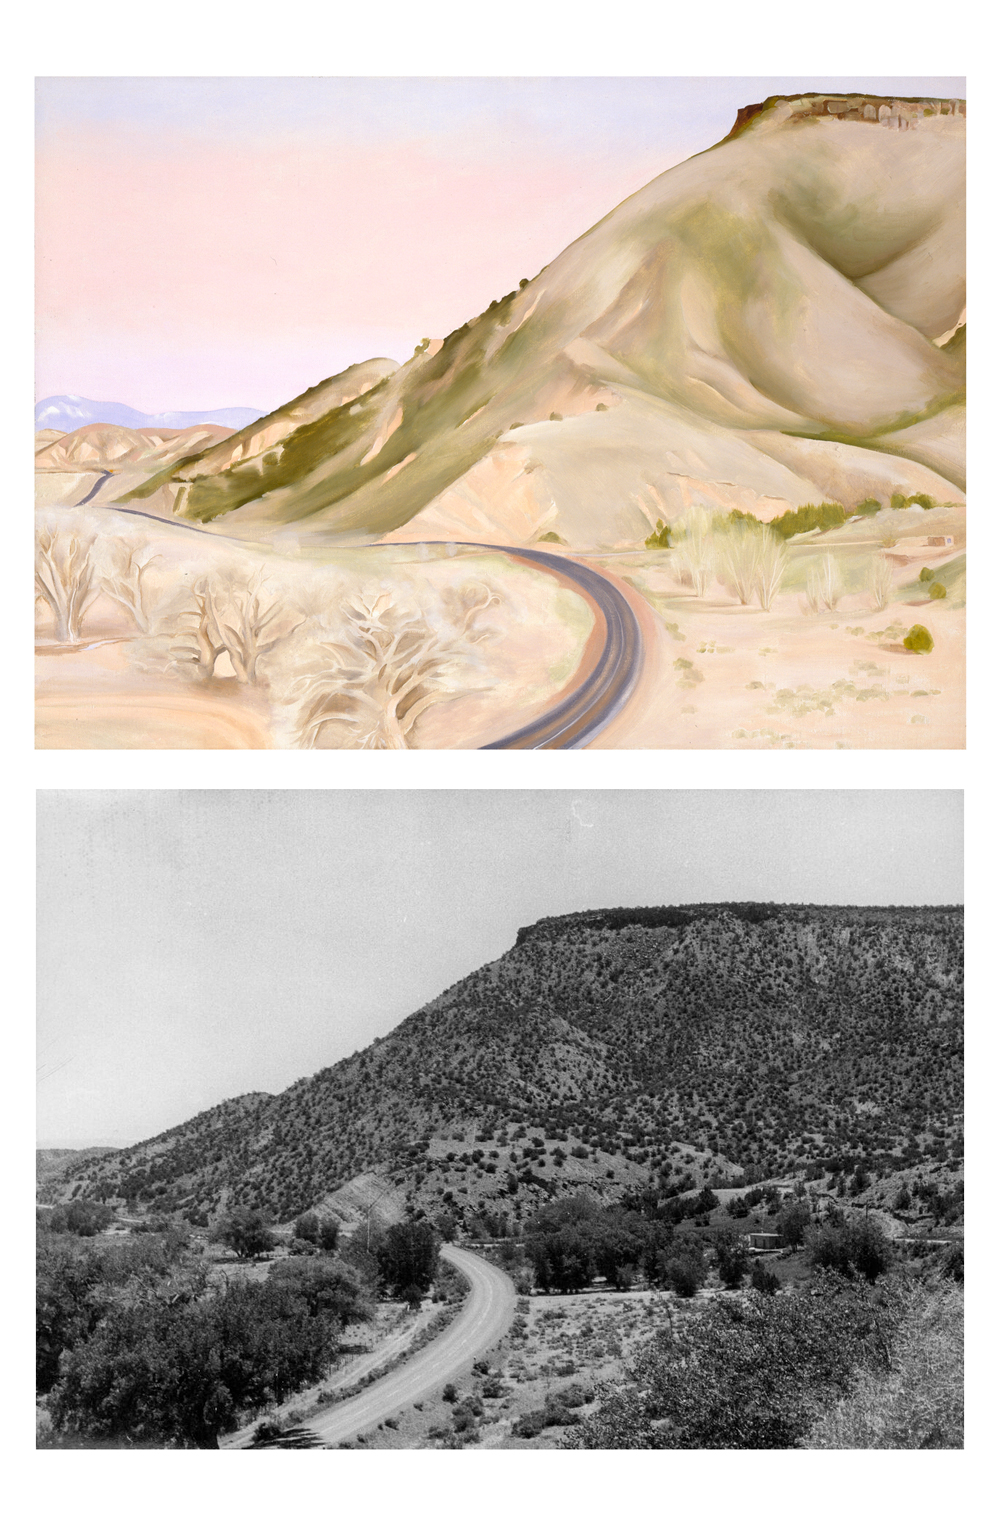 ABOVE: Georgia O'Keeffe. Mesa and Road East II, 1952. Oil on canvas, 26 x 36 1/8 in. Georgia O'Keeffe Museum. Gift of The Georgia O'Keeffe Foundation. BELOW: Georgia O'Keeffe. Untitled (Road from Abiquiu), ca. 1964. Black and white photograph. Gift of The Georgia O'Keeffe Foundation.